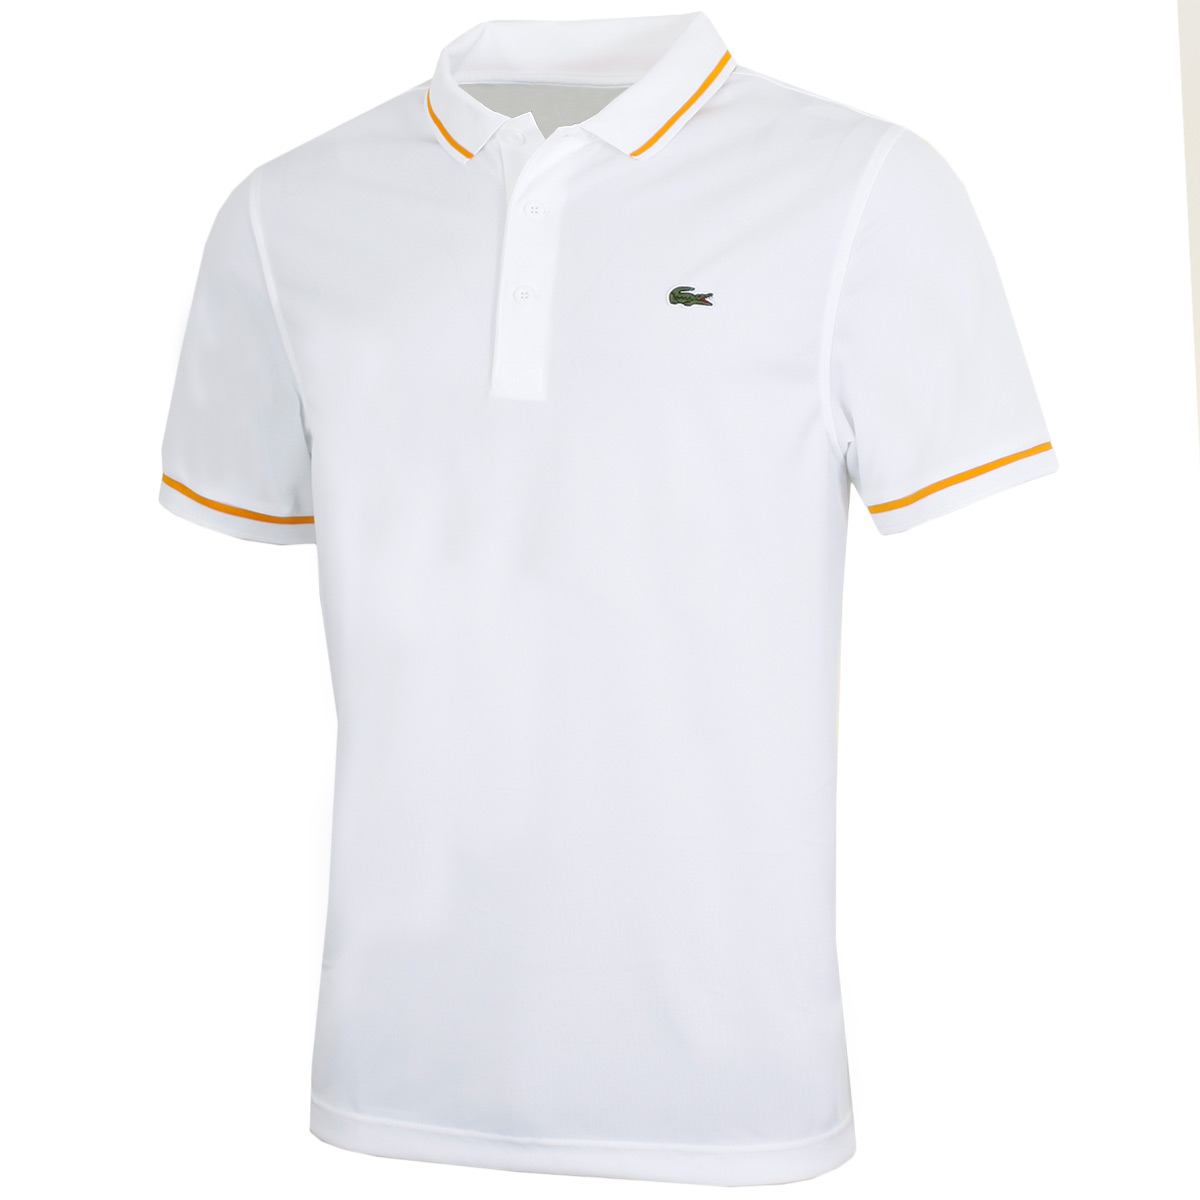 Lacoste Polo Shirt Size 6 Chad Crowley Productions